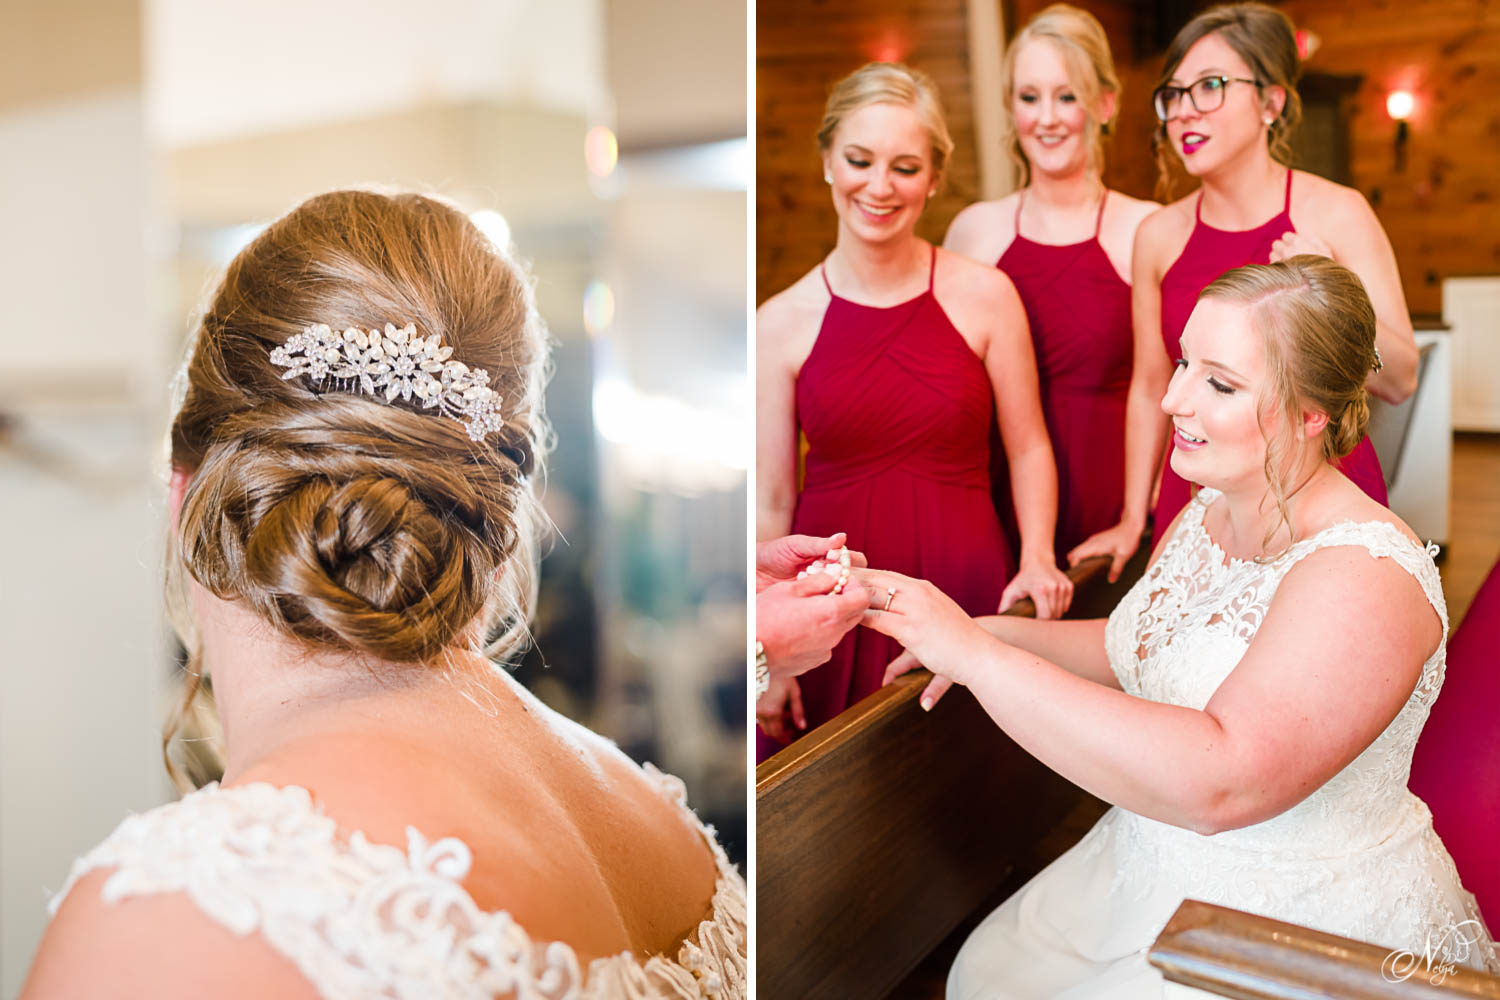 bride wedding hair updo by Make M Up GA. And bridesmaids helping bride put on her jewelry.